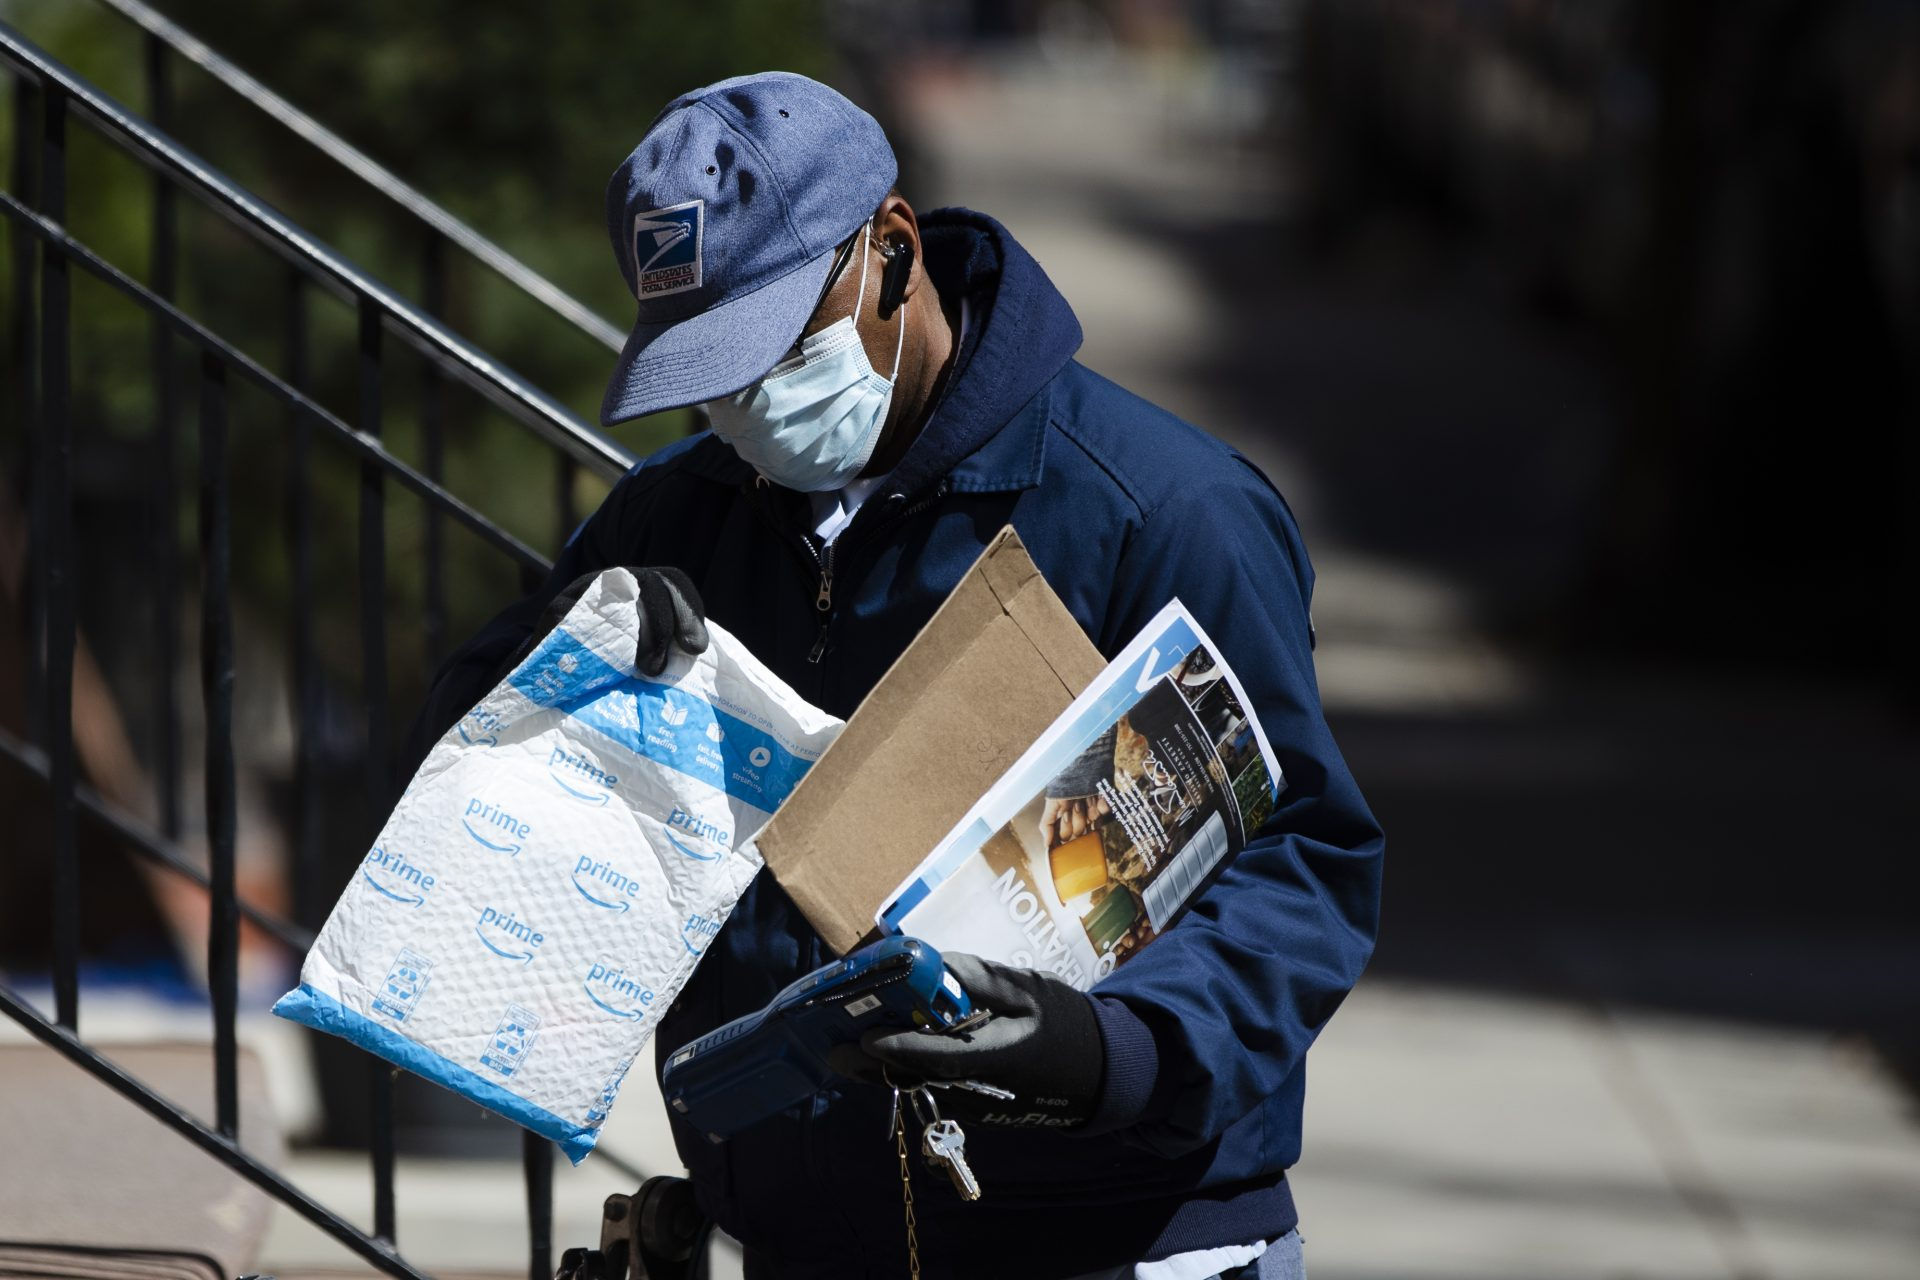 A United States Postal worker makes a delivery with gloves and a mask in Philadelphia, Thursday, April 2, 2020.